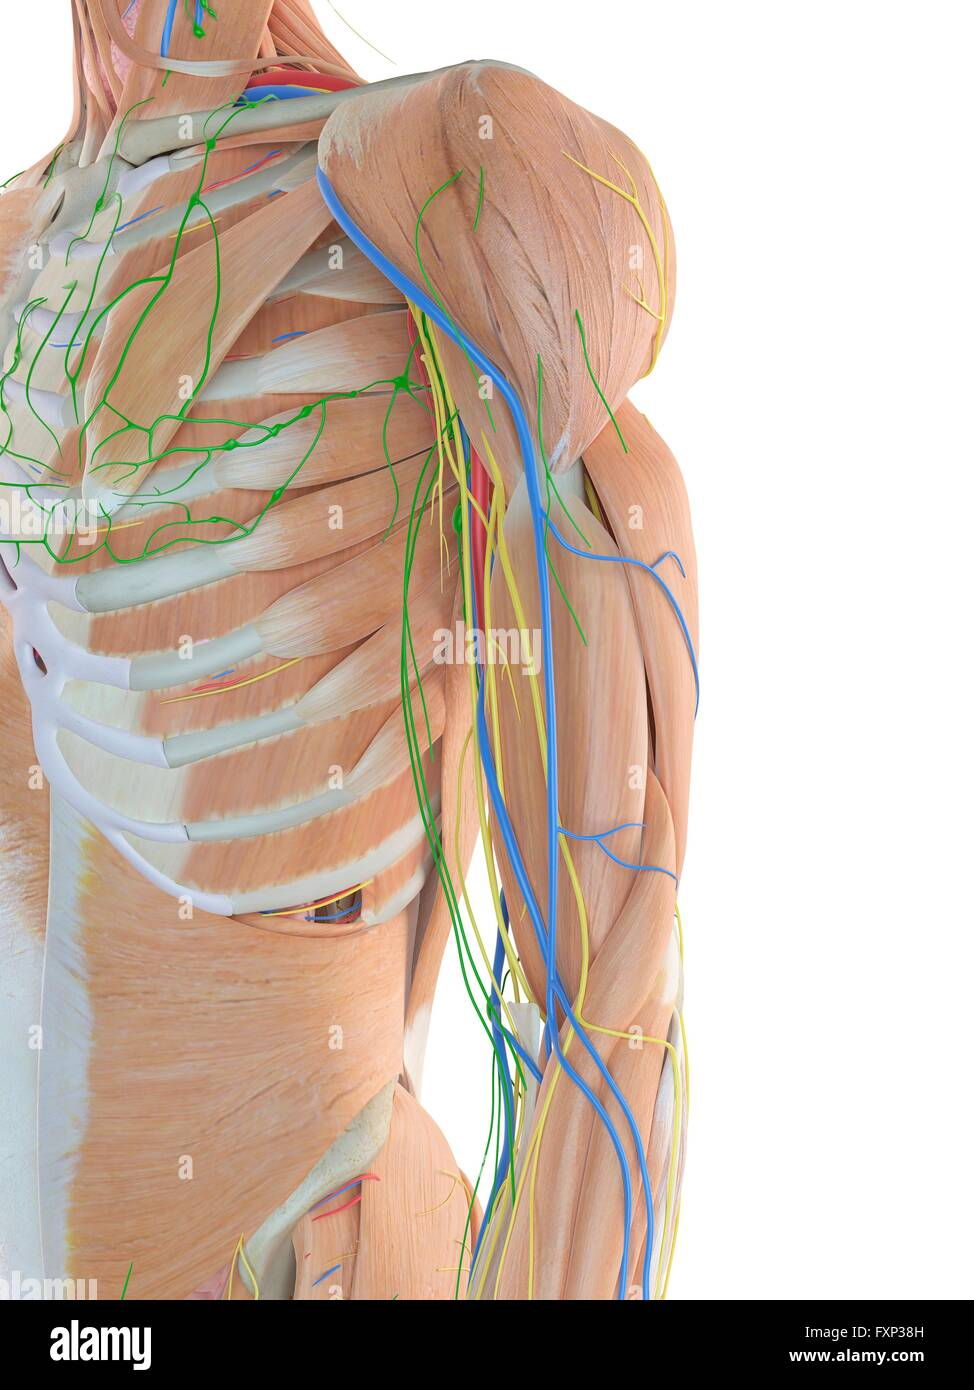 Arm Arteries Stock Photos & Arm Arteries Stock Images - Alamy